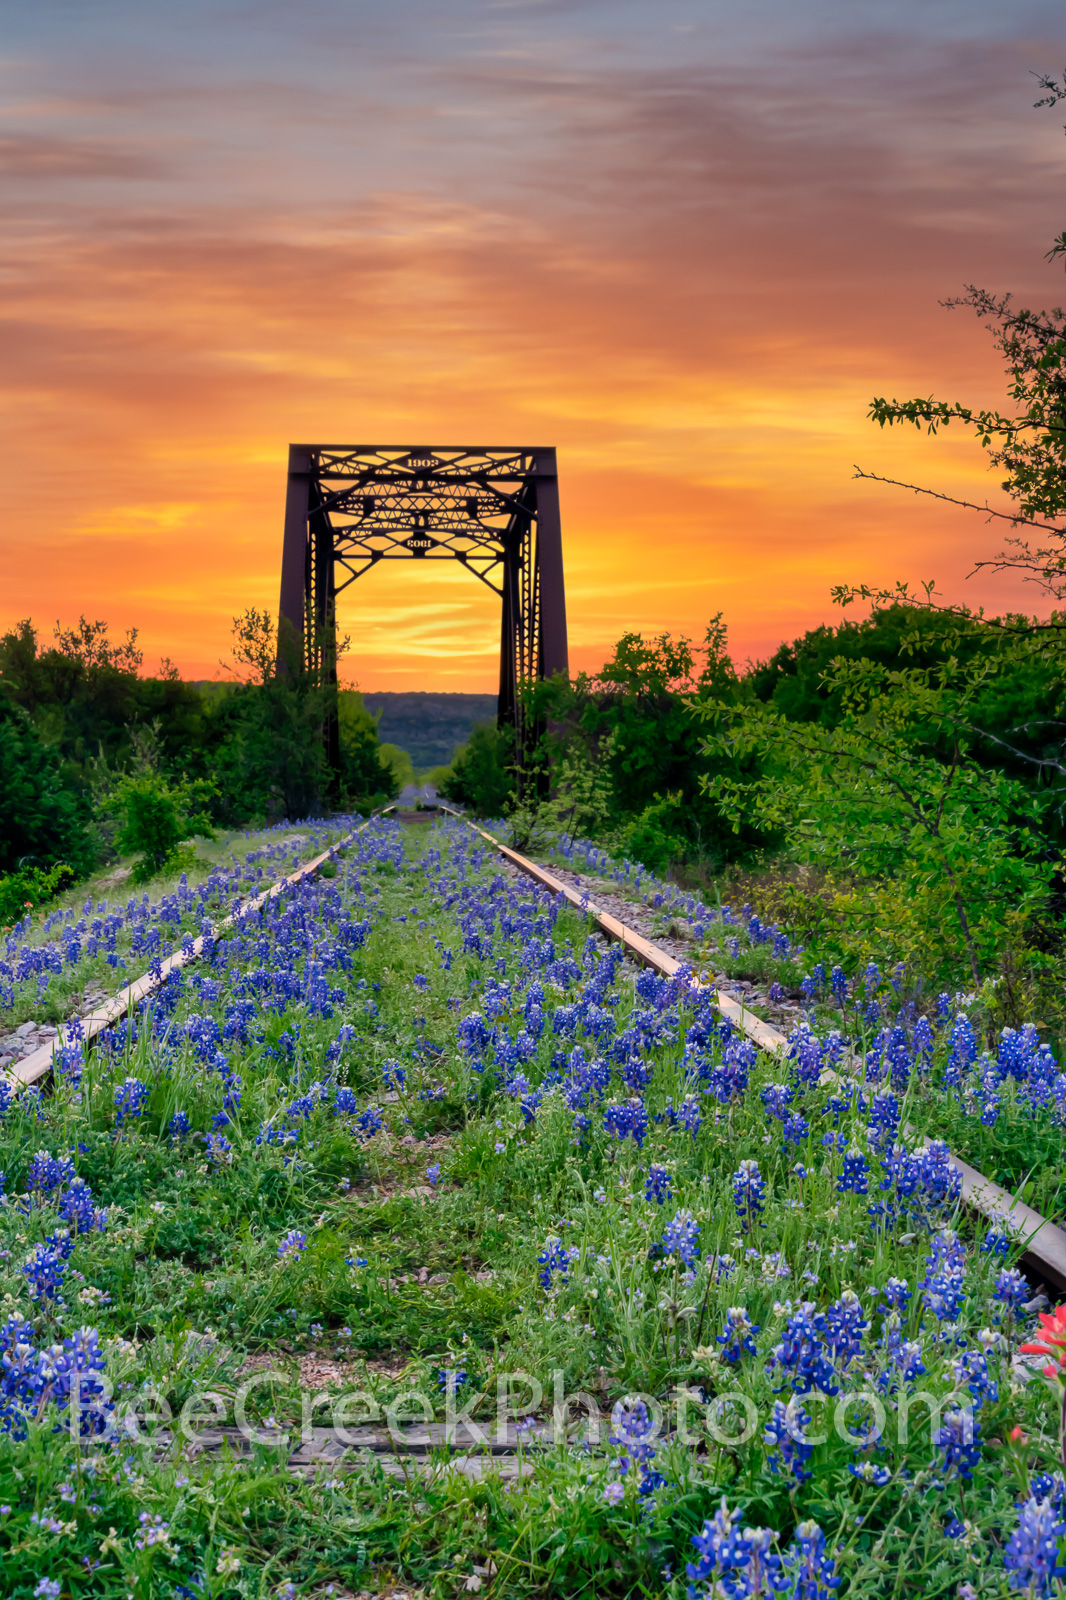 Bluebonnet at Railroad Tracks Sunrise Vertical  - We have come to this old abandoned rail road track in the past years for some...